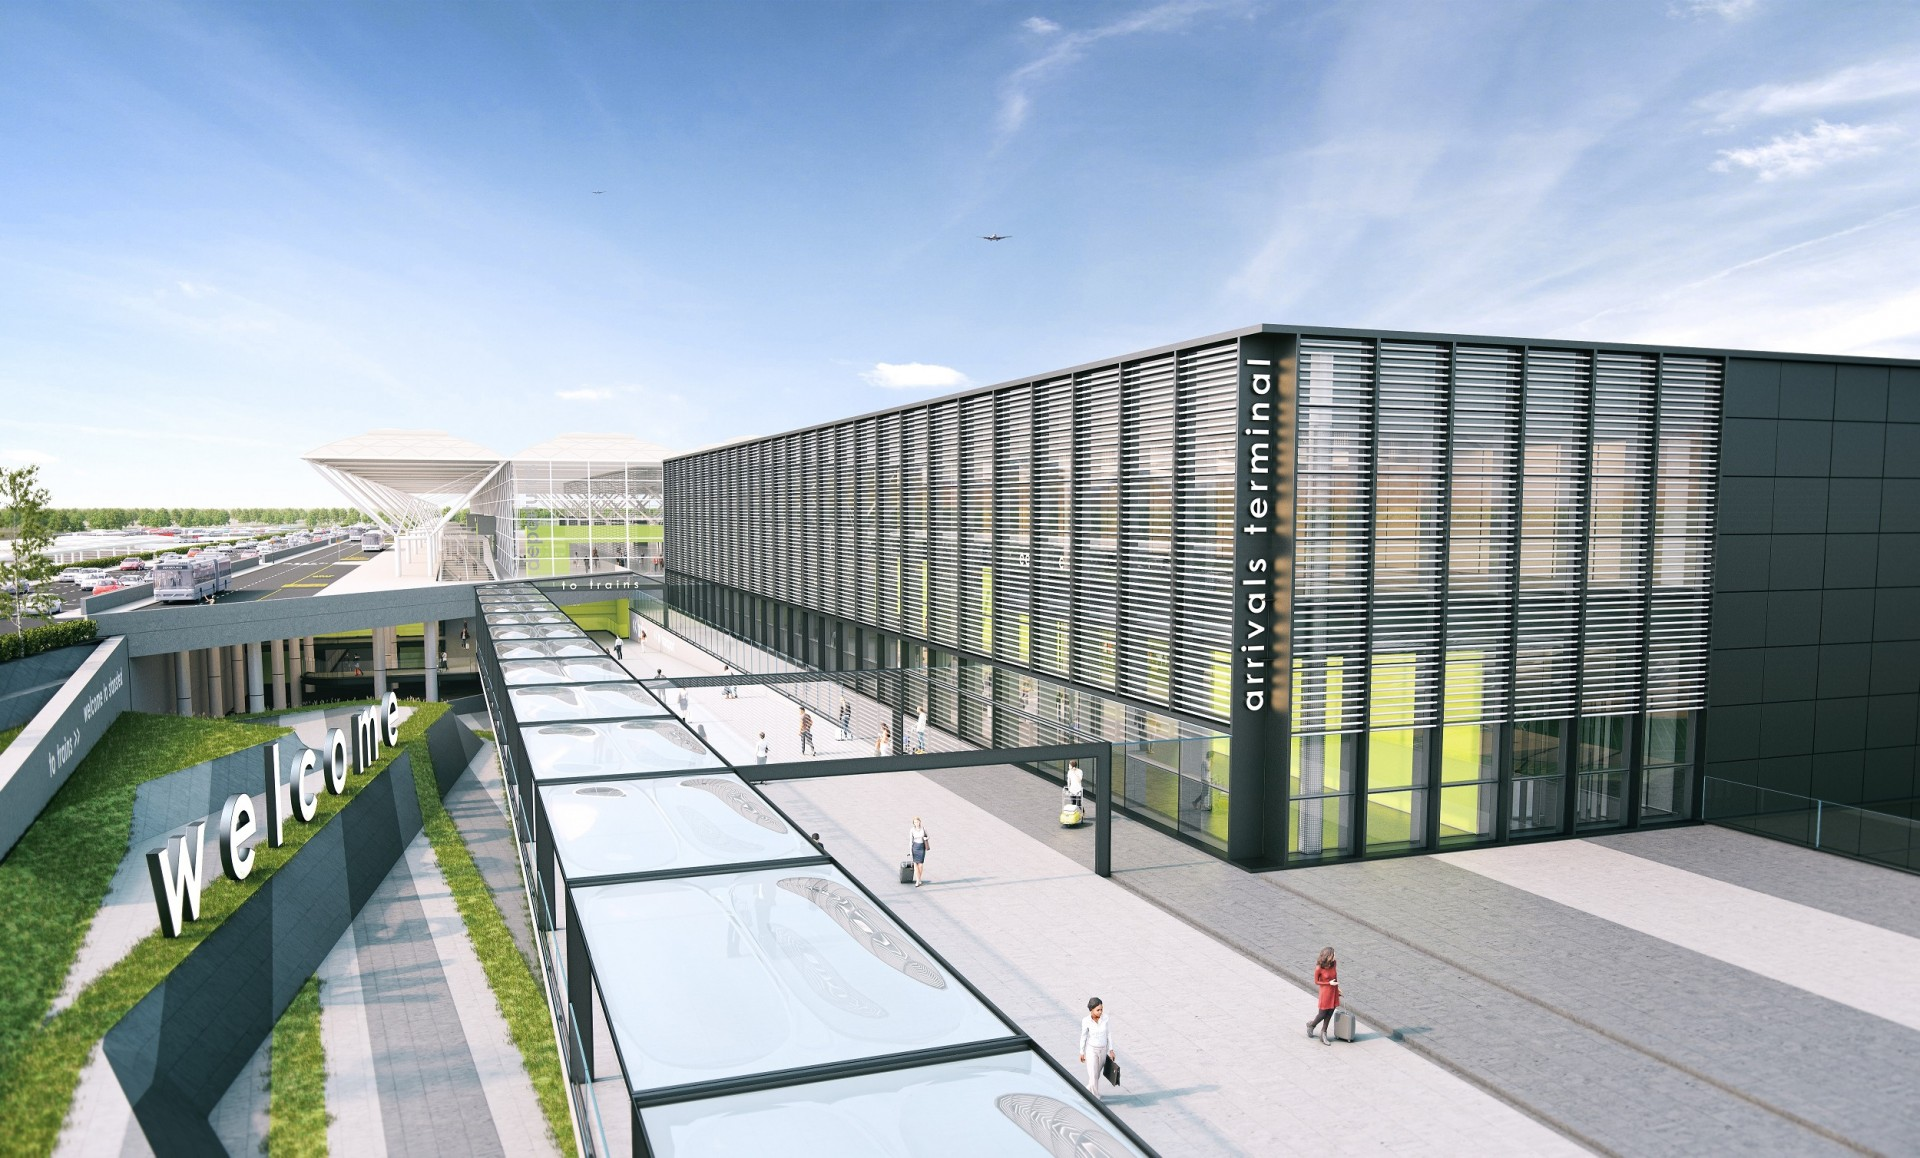 £600m is being invested in facilities over the next five-years to transform the airport.